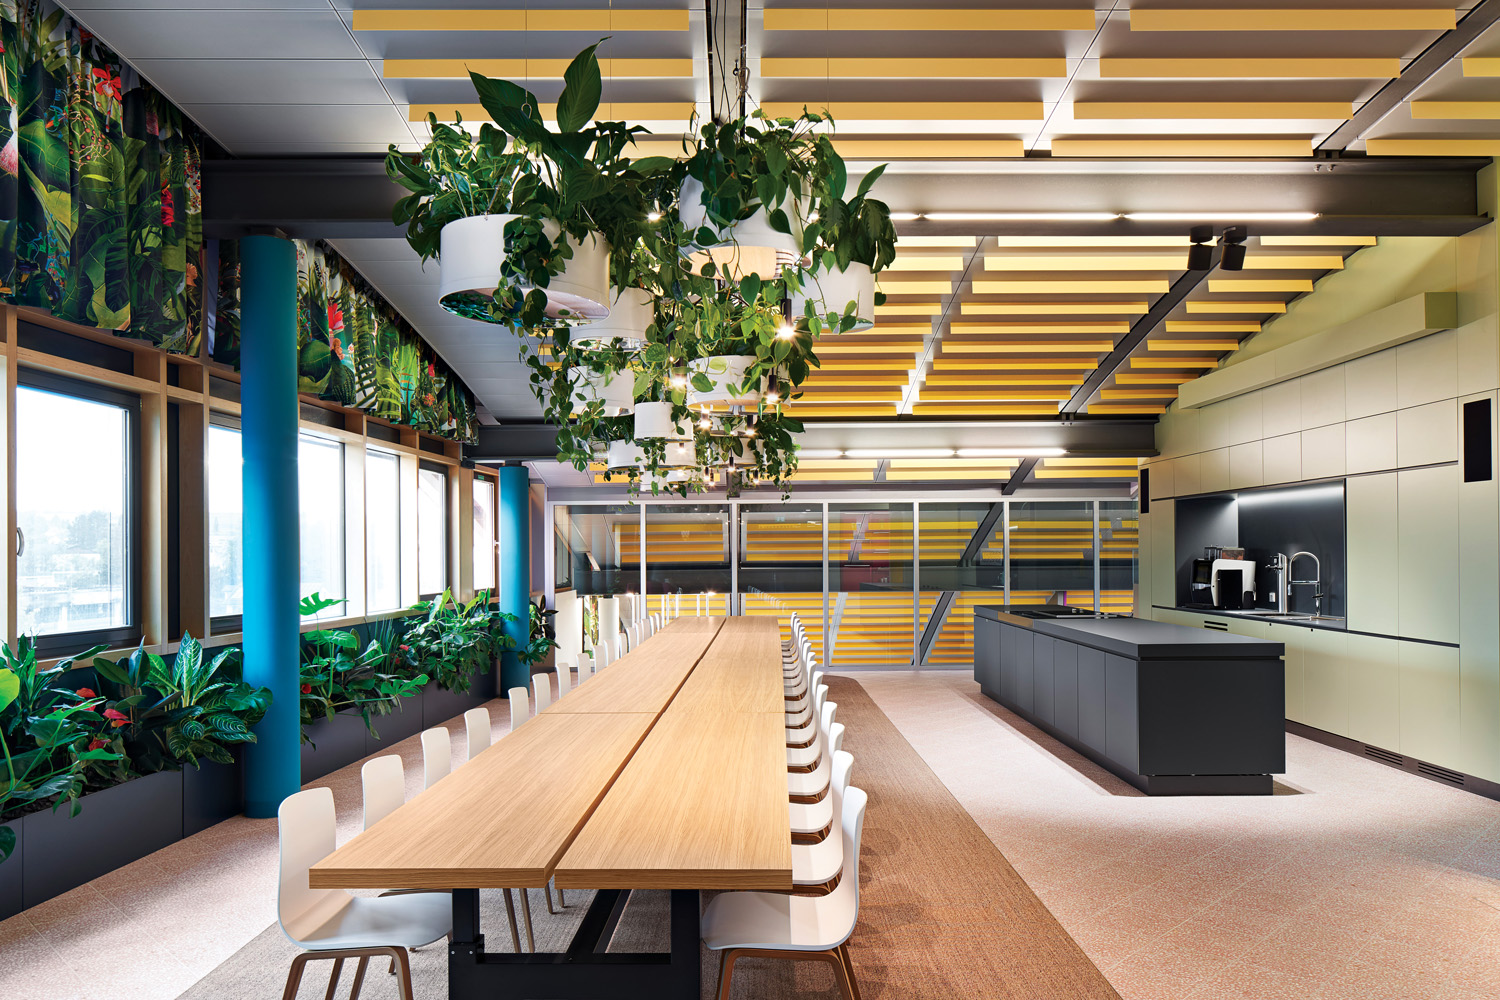 © Philip Kottlorz, courtesy Ippolito Fleitz Group The Sunset Café is a big kitchen, a meeting room either with colleagues or outside visitors and an event space.